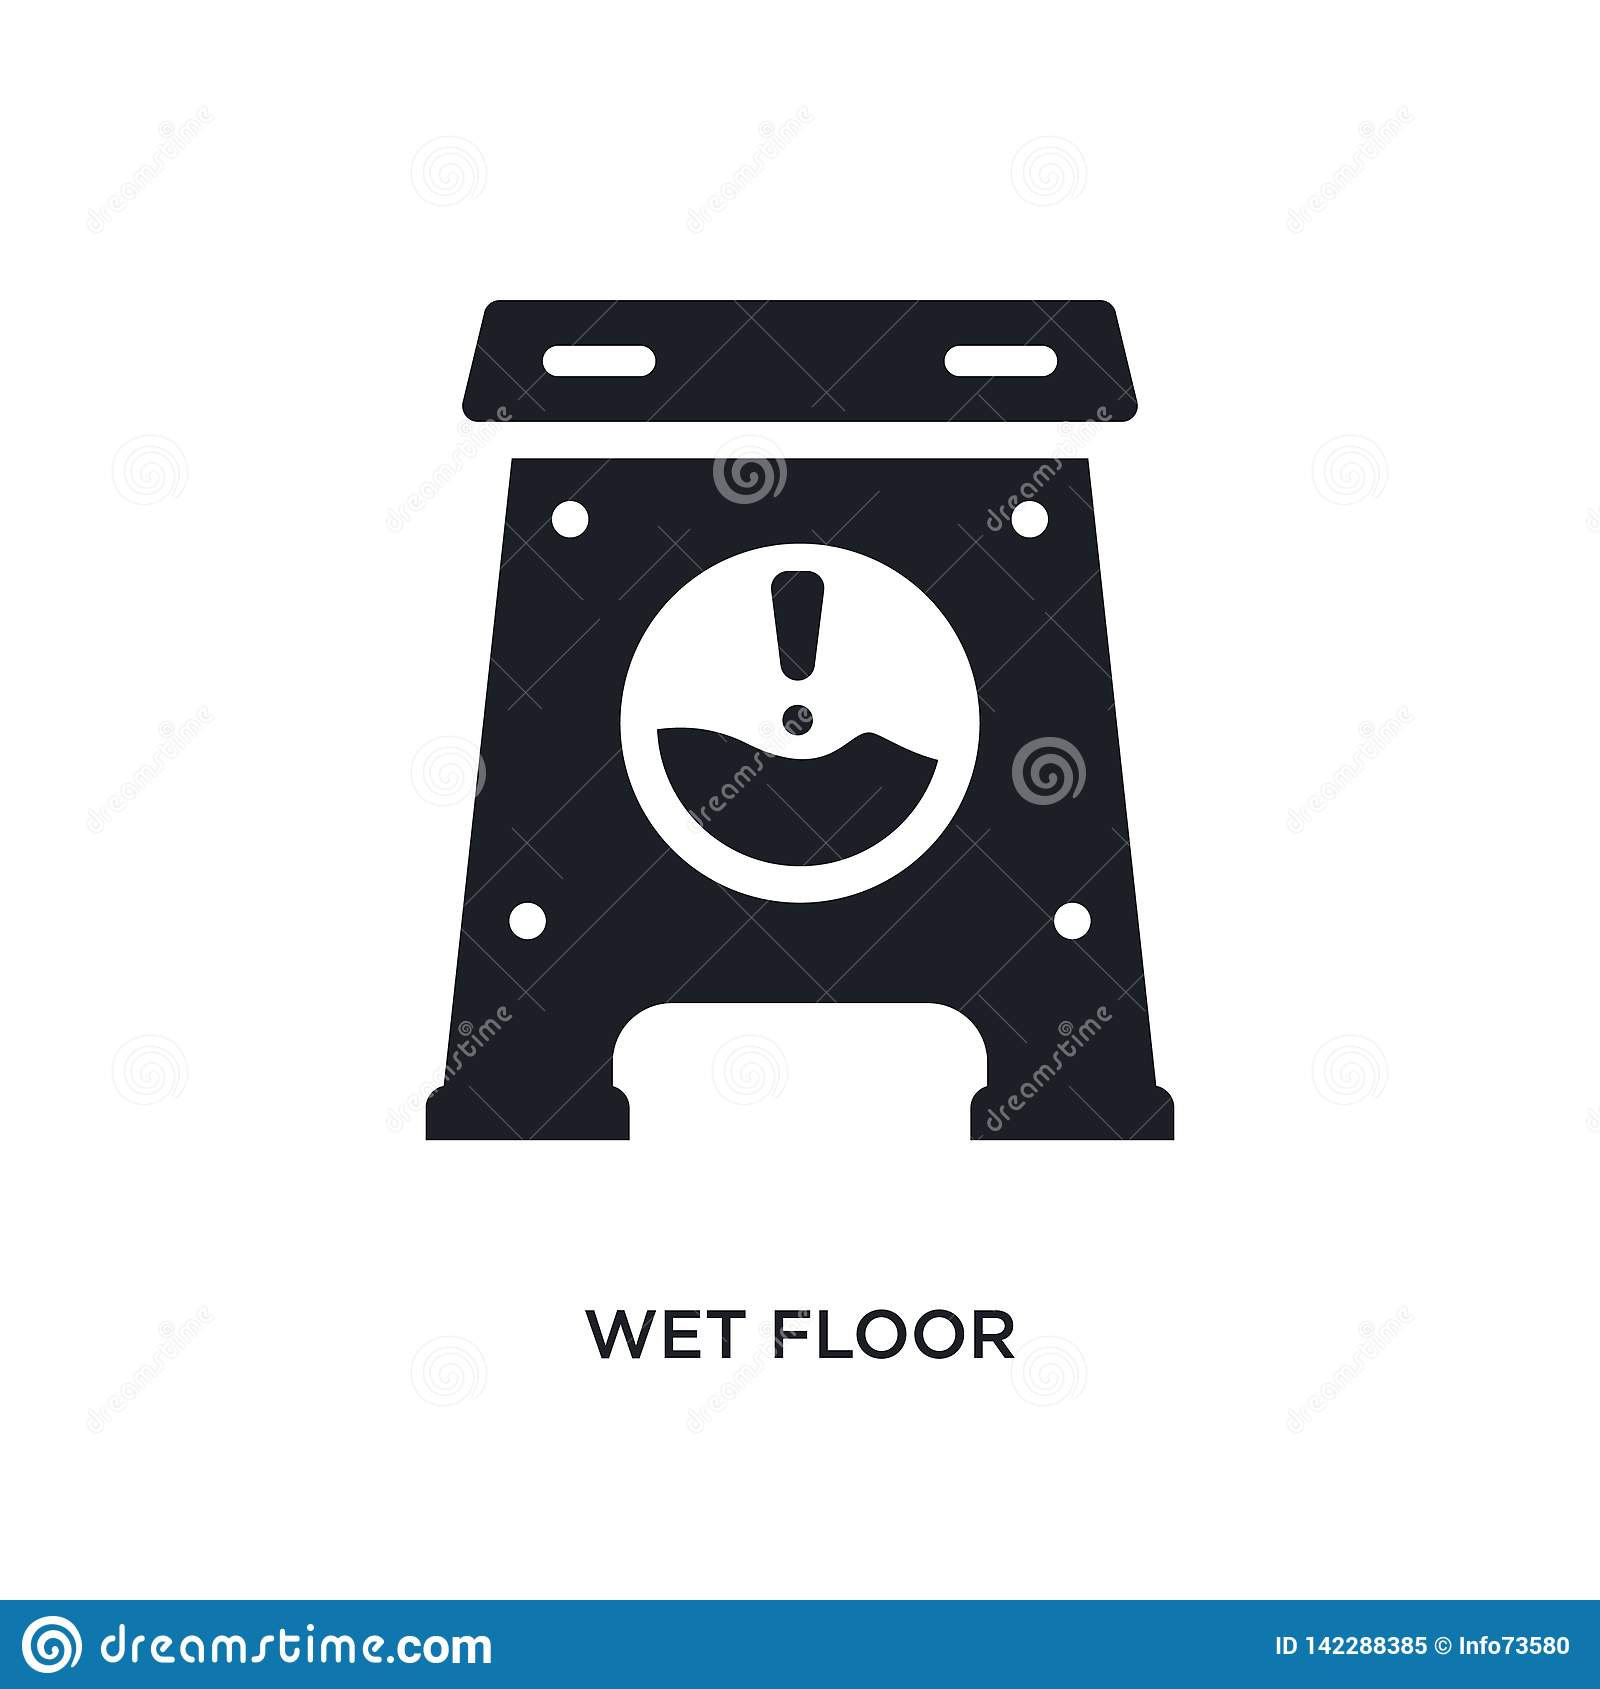 wet floor isolated icon. simple element illustration from cleaning concept icons. wet floor editable logo sign symbol design on